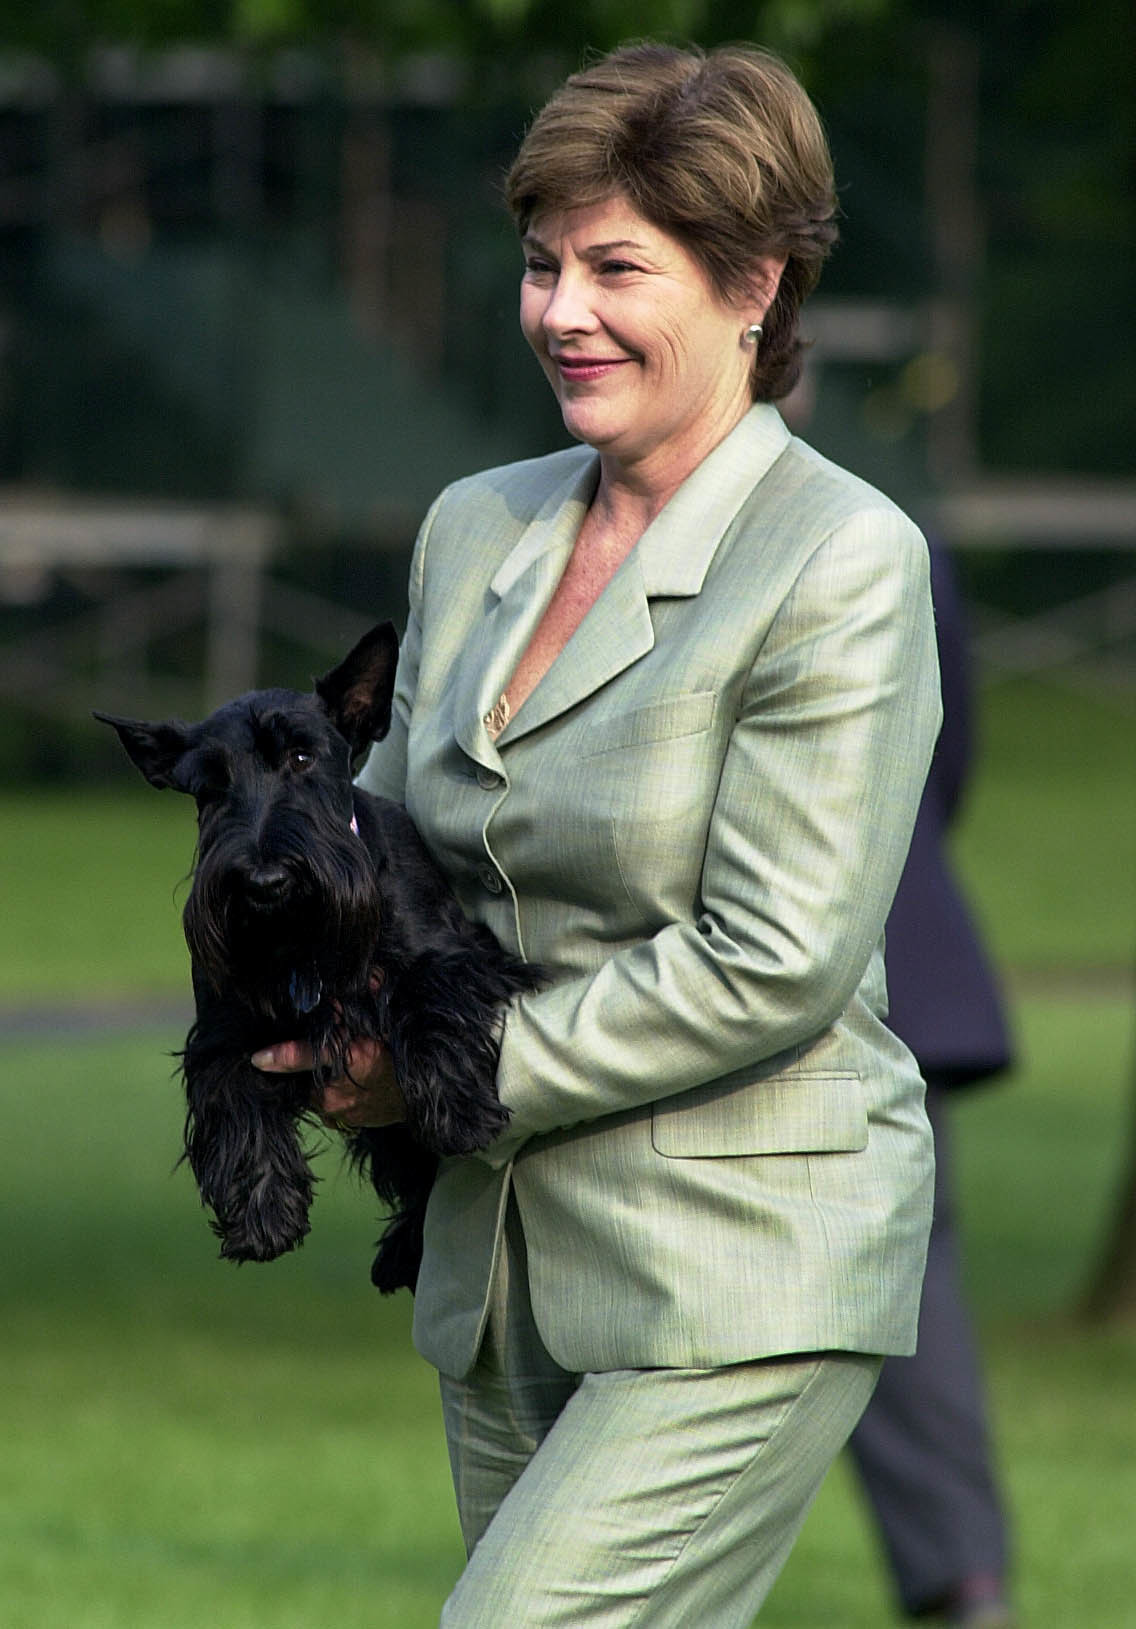 Laura Bush A Look At Stylish First Ladies Throughout